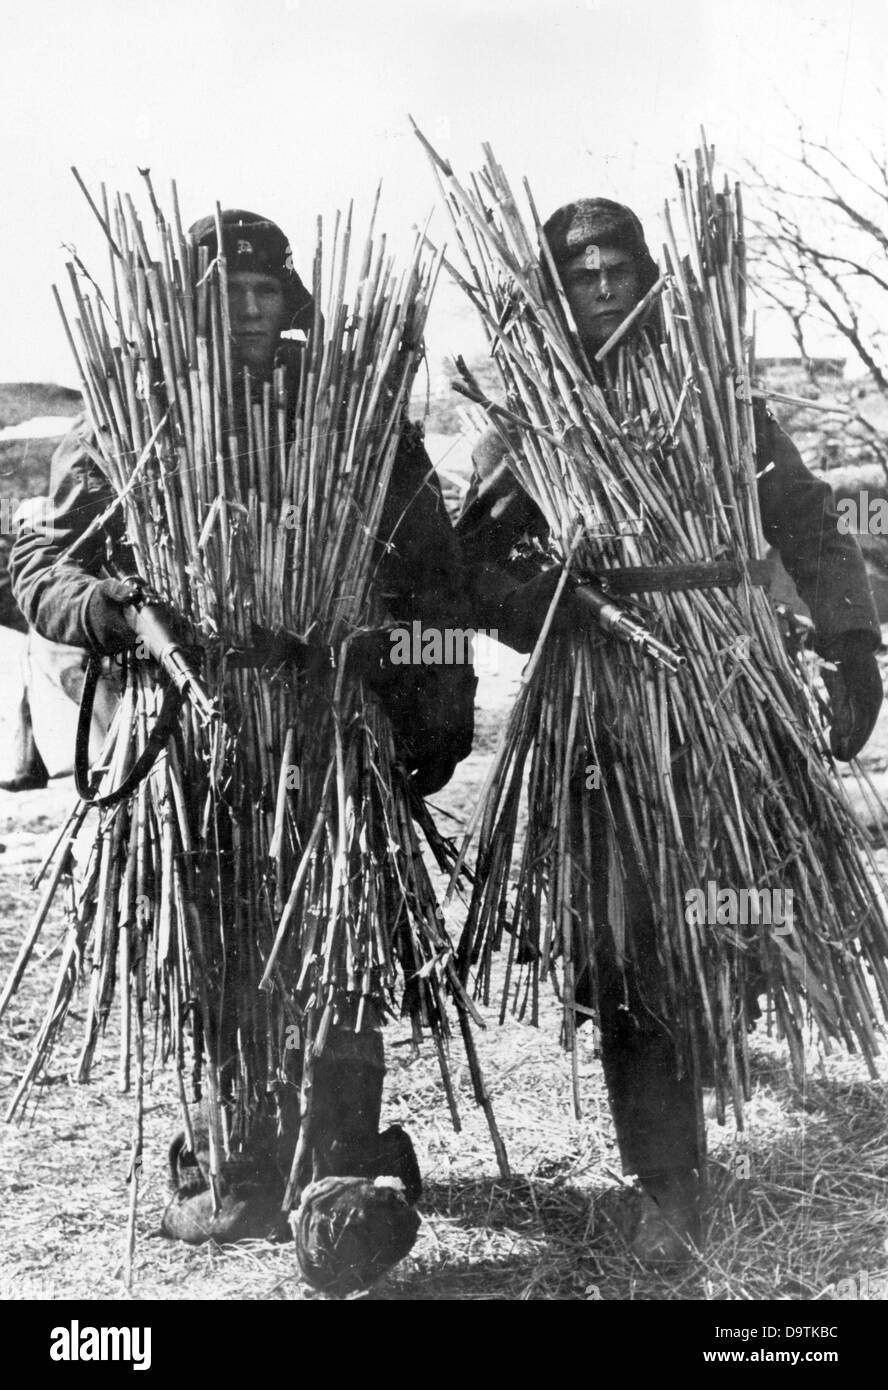 Camouflaged soldiers are pictured at the Eastern Front, date and place unknown. The Nazi Propaganda! on the back - Stock Image